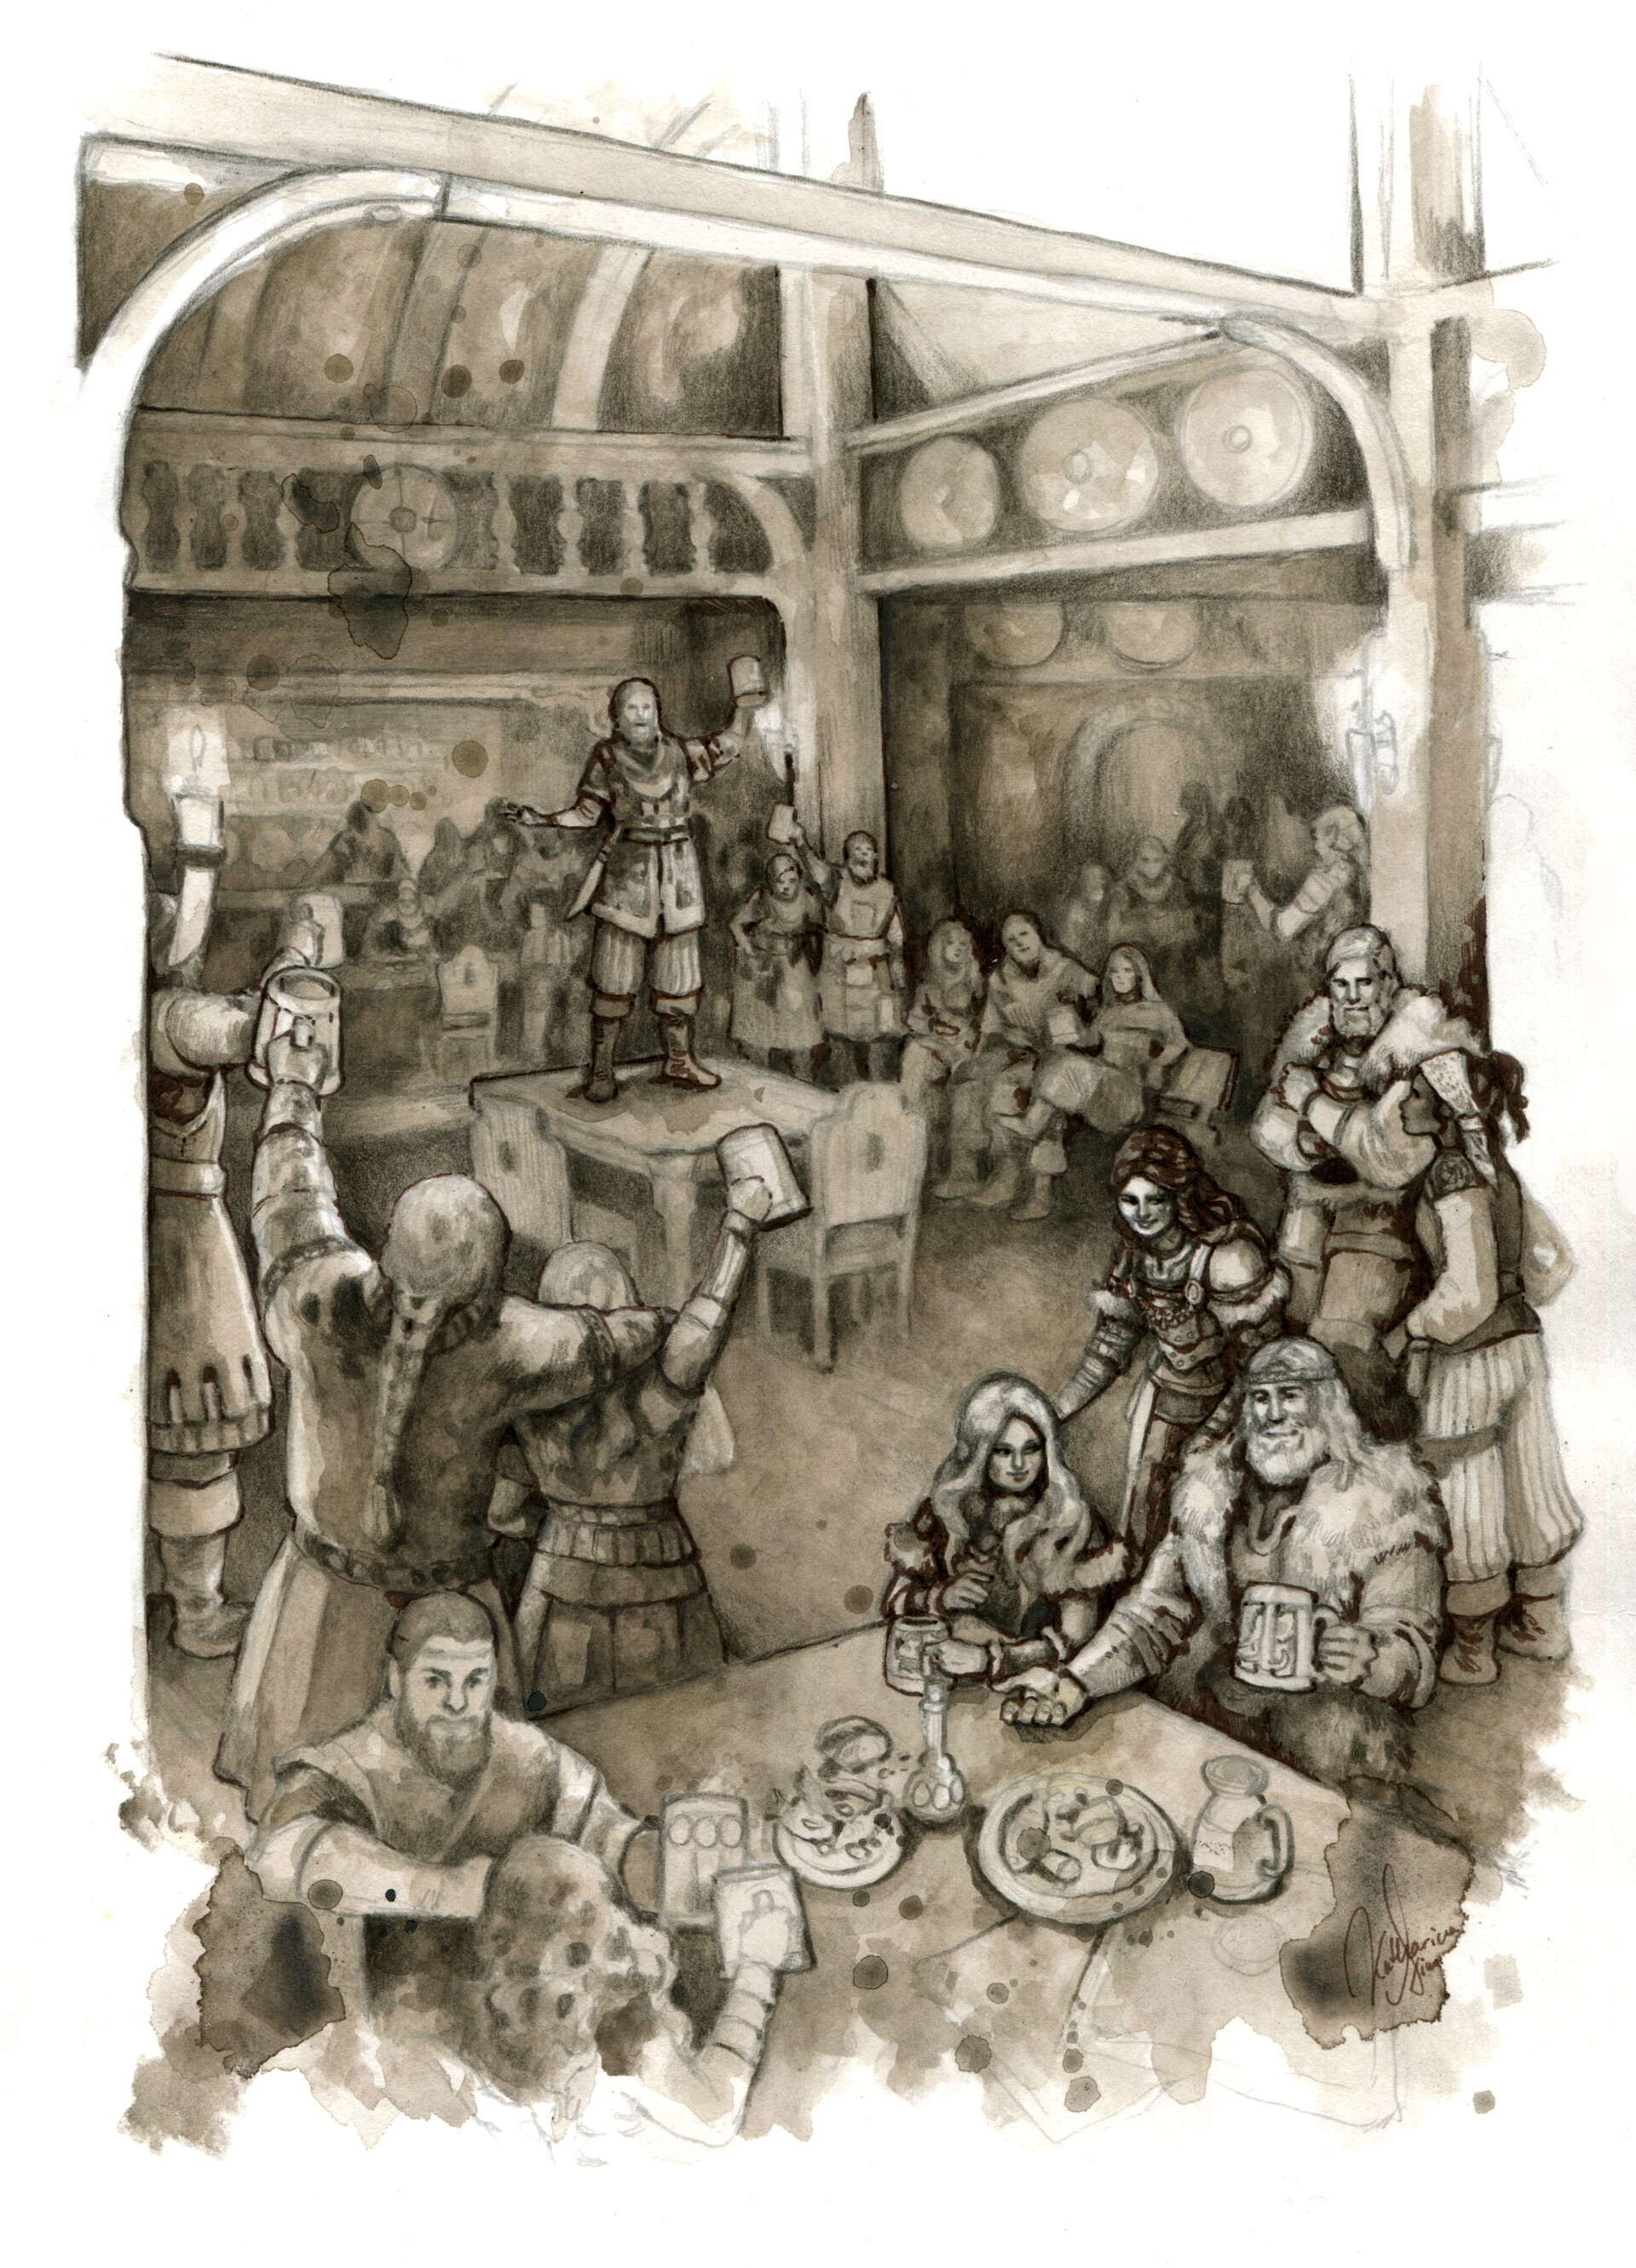 Party in the tavern